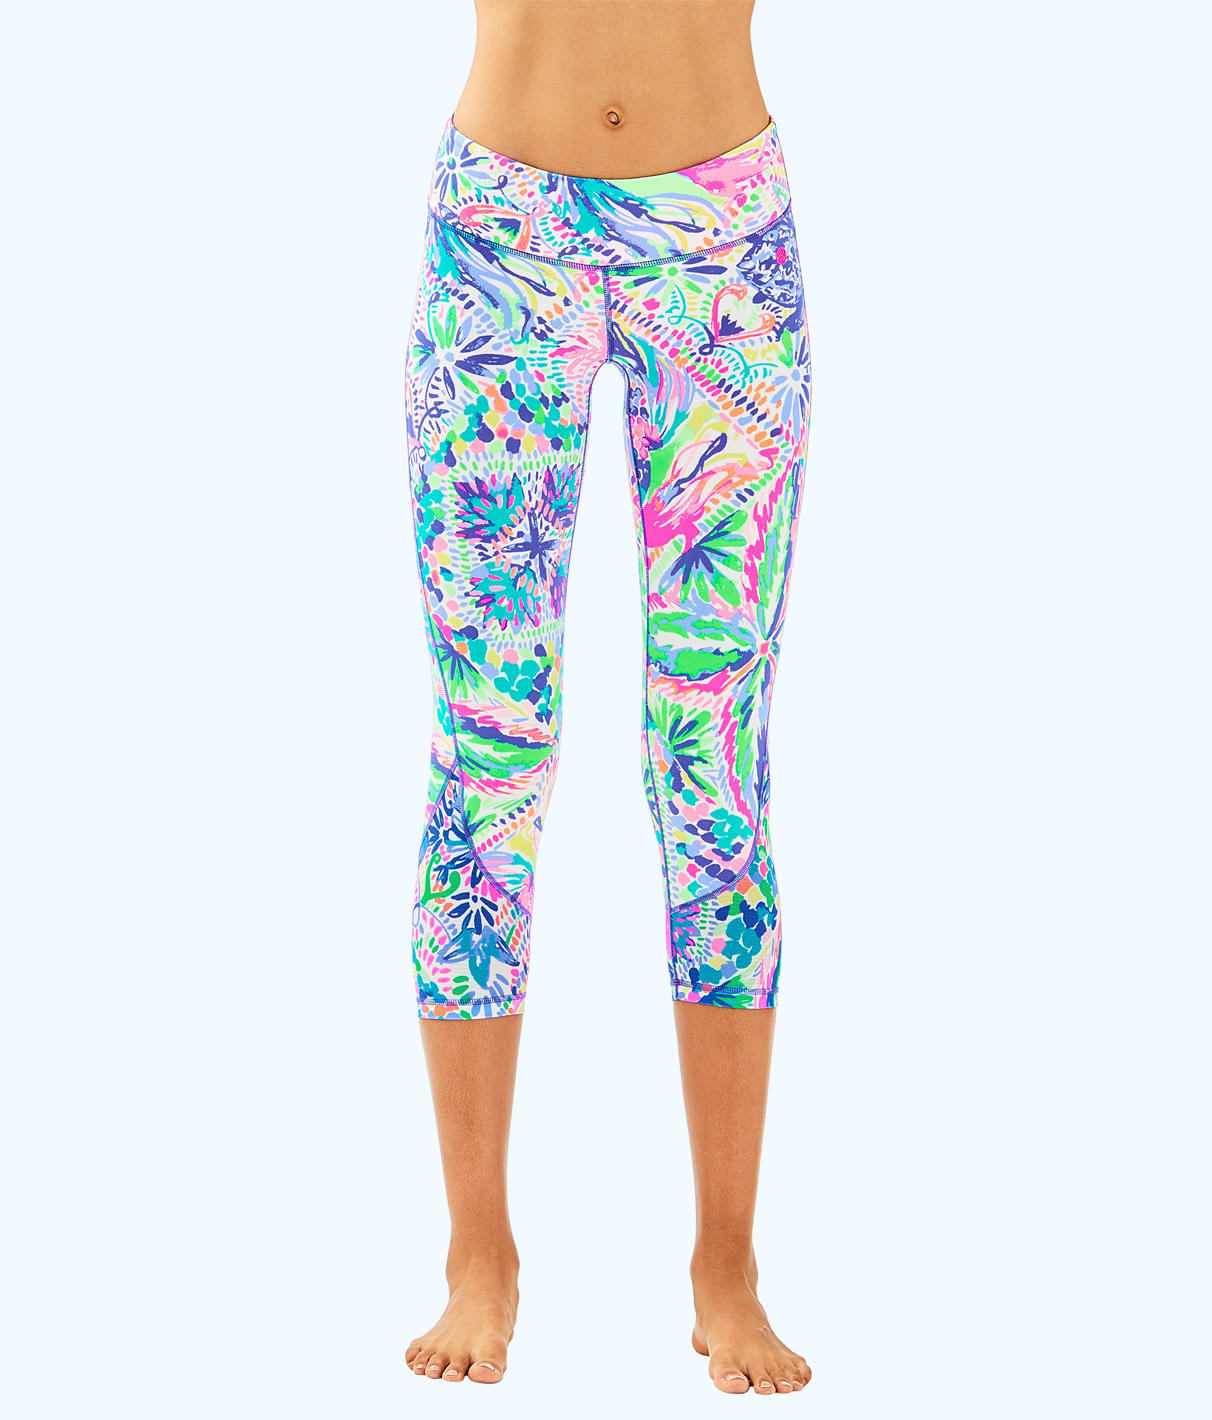 Lilly Pulitzer Lilly Pulitzer Womens Luxletic 21